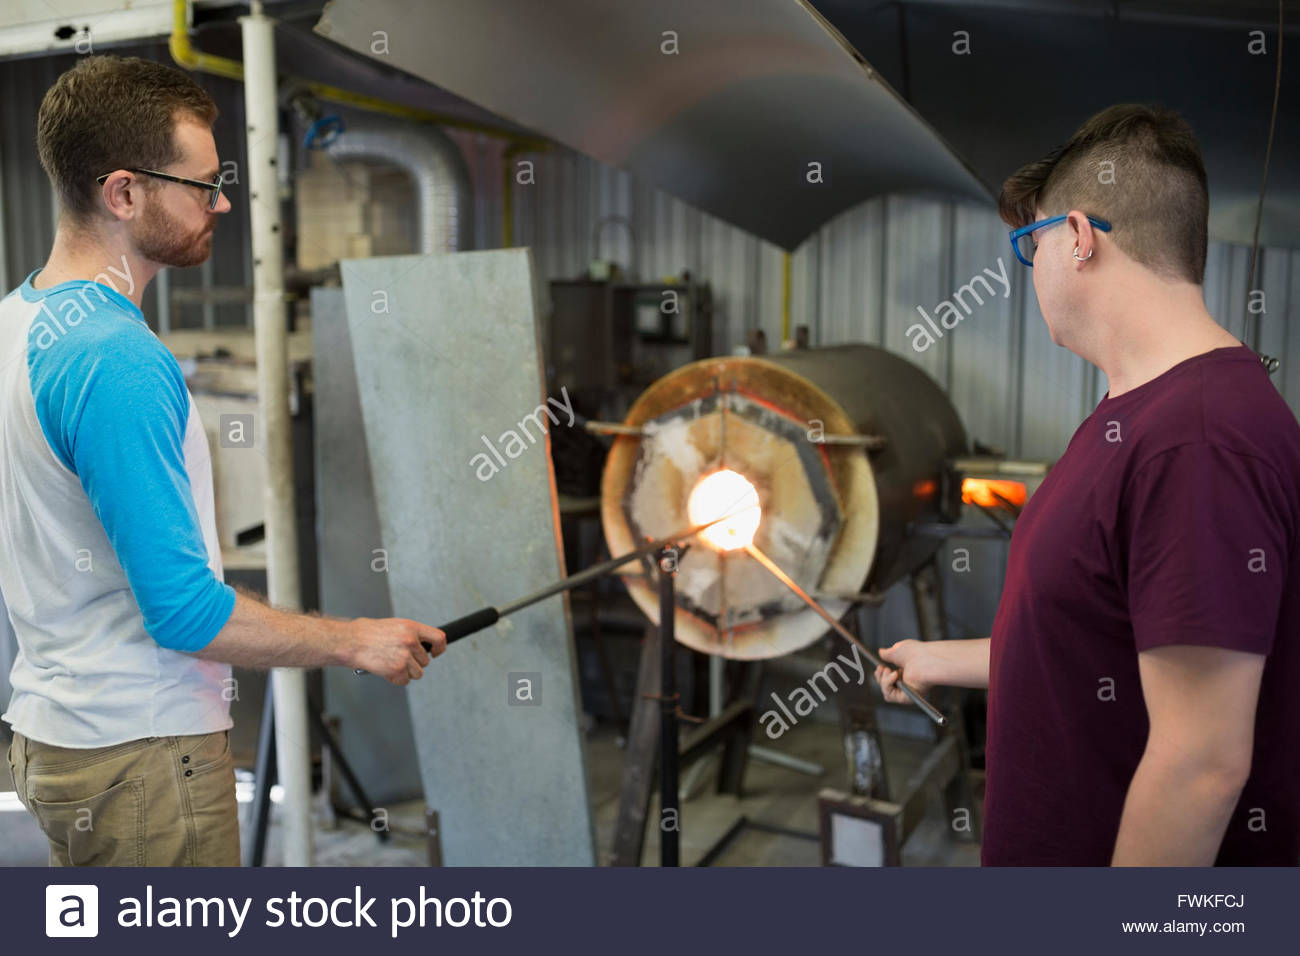 Glassblowers heating rods at furnace in workshop - Stock Image